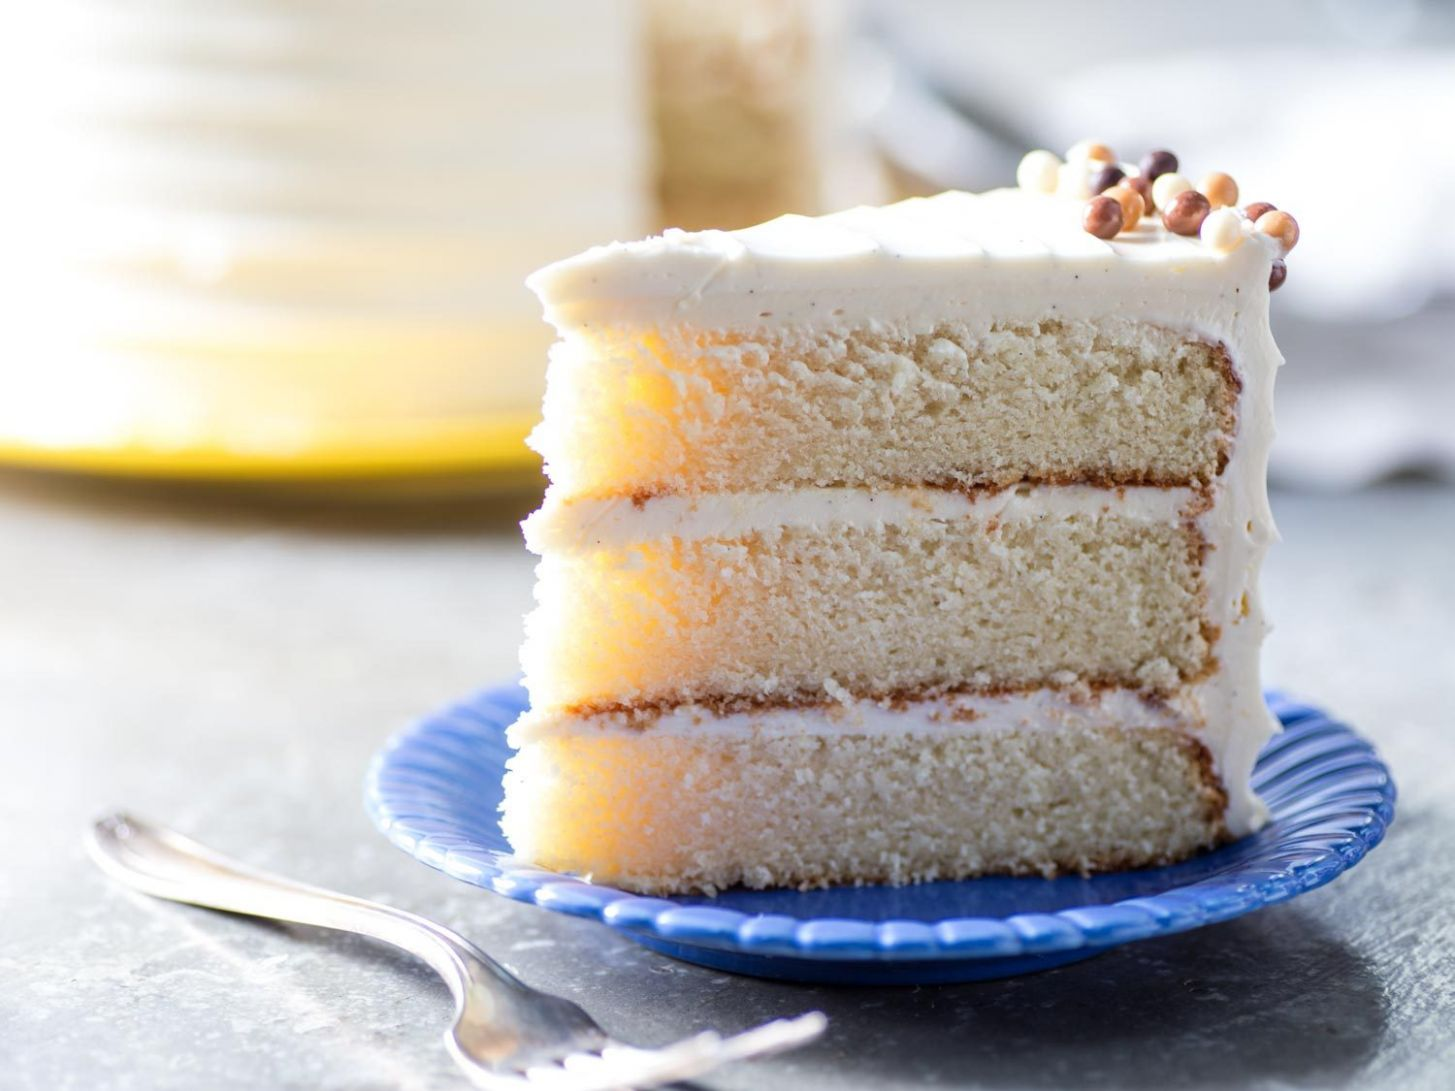 Classic Vanilla Butter Cake Recipe - Recipes Cakes From Scratch